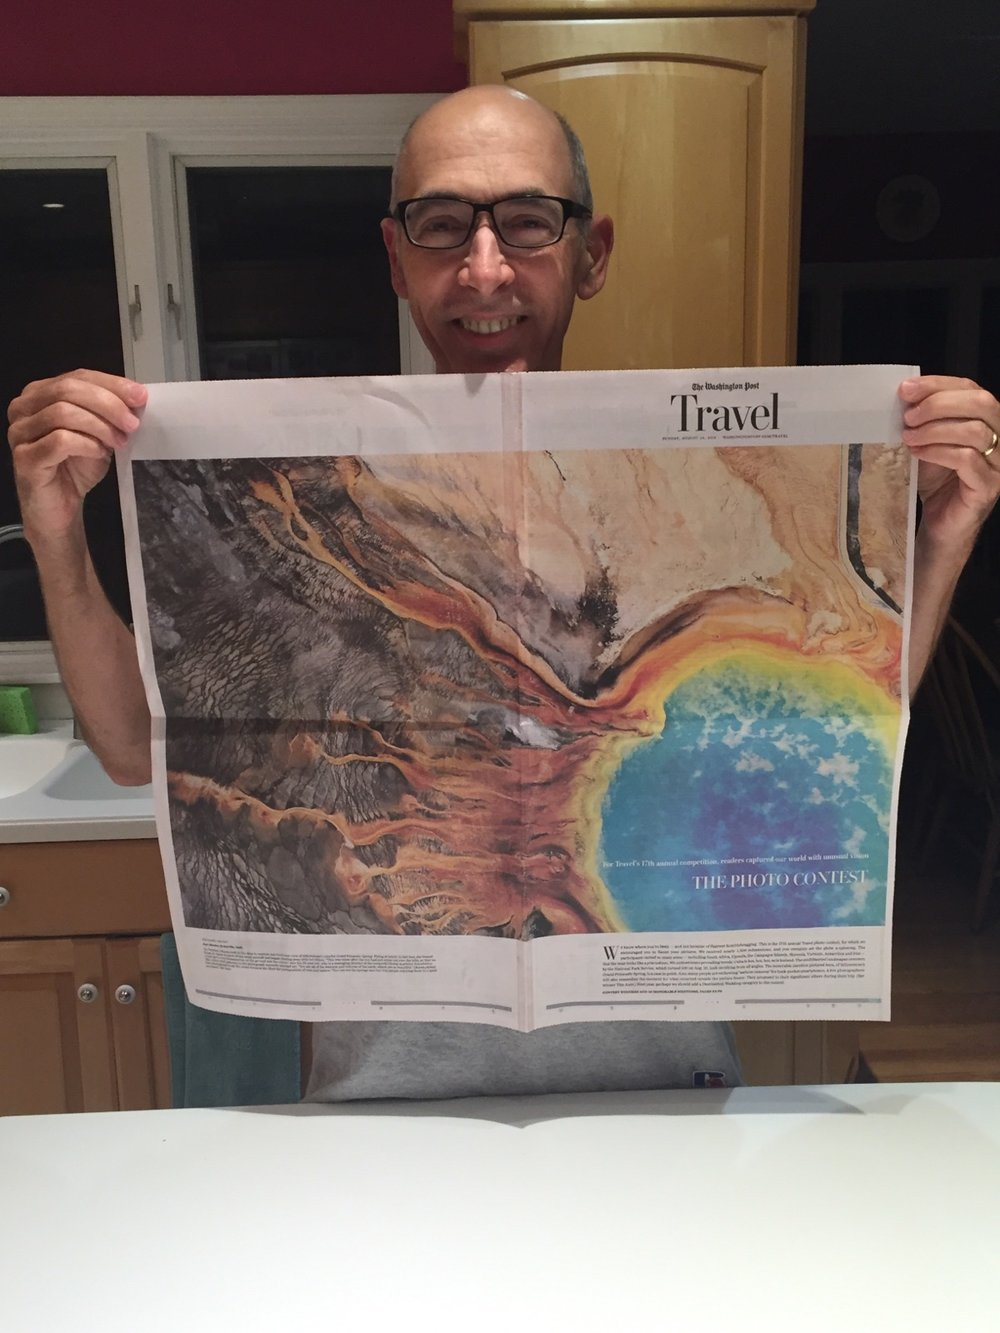 My uncle James R Banks modeling the Washington Post Travel section from Sunday, August 28, 2016. Thanks to Julia Reid Banks for the photos!